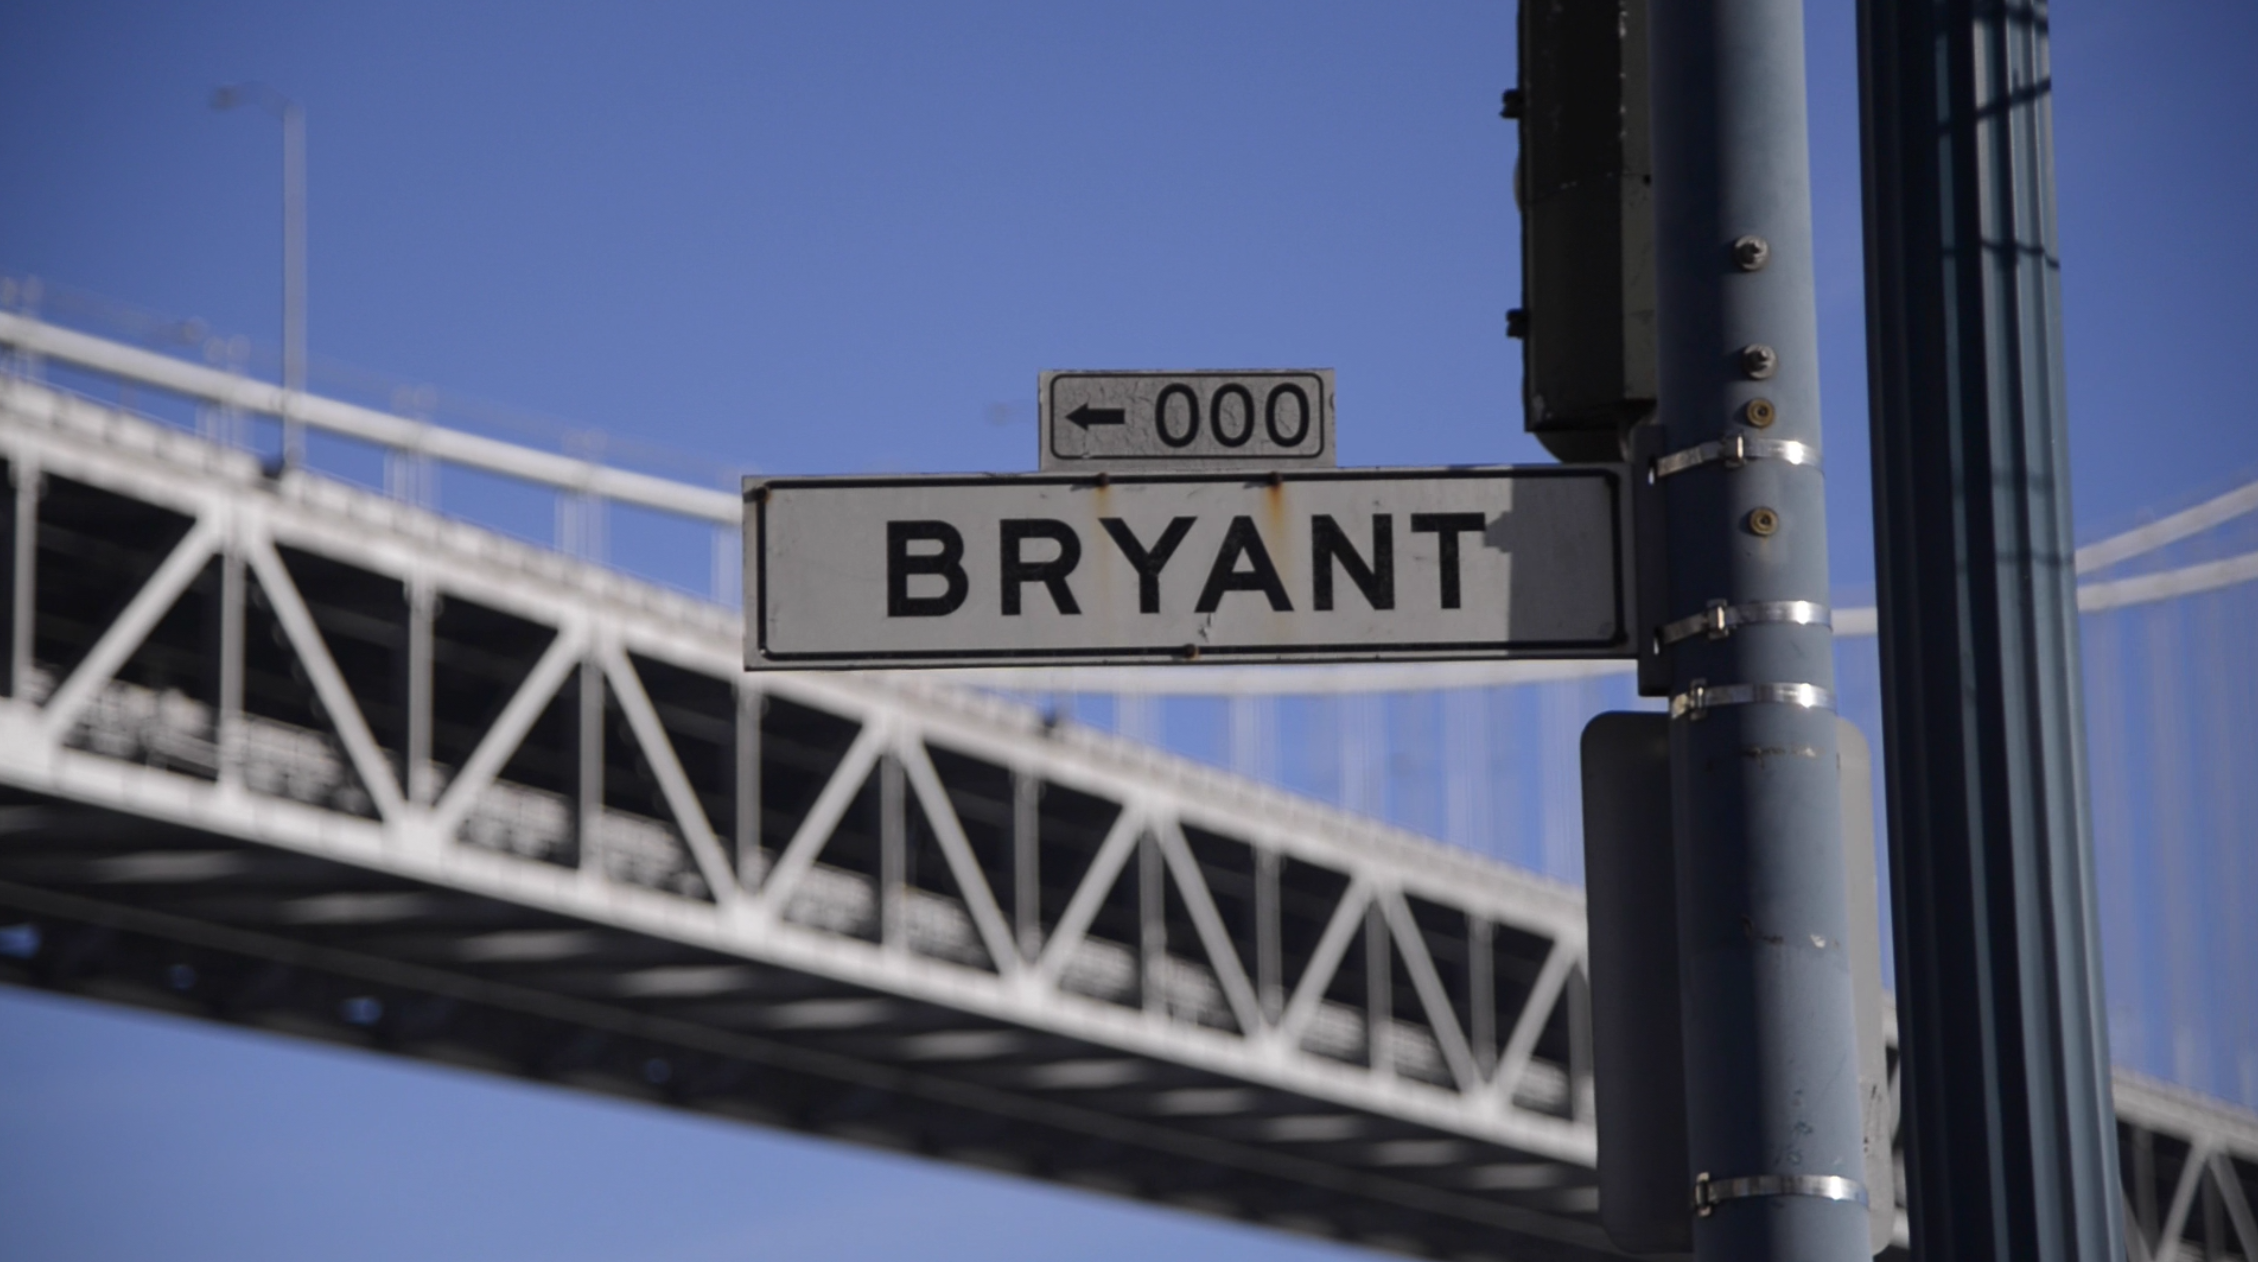 bryant street sign in front of bay bridge